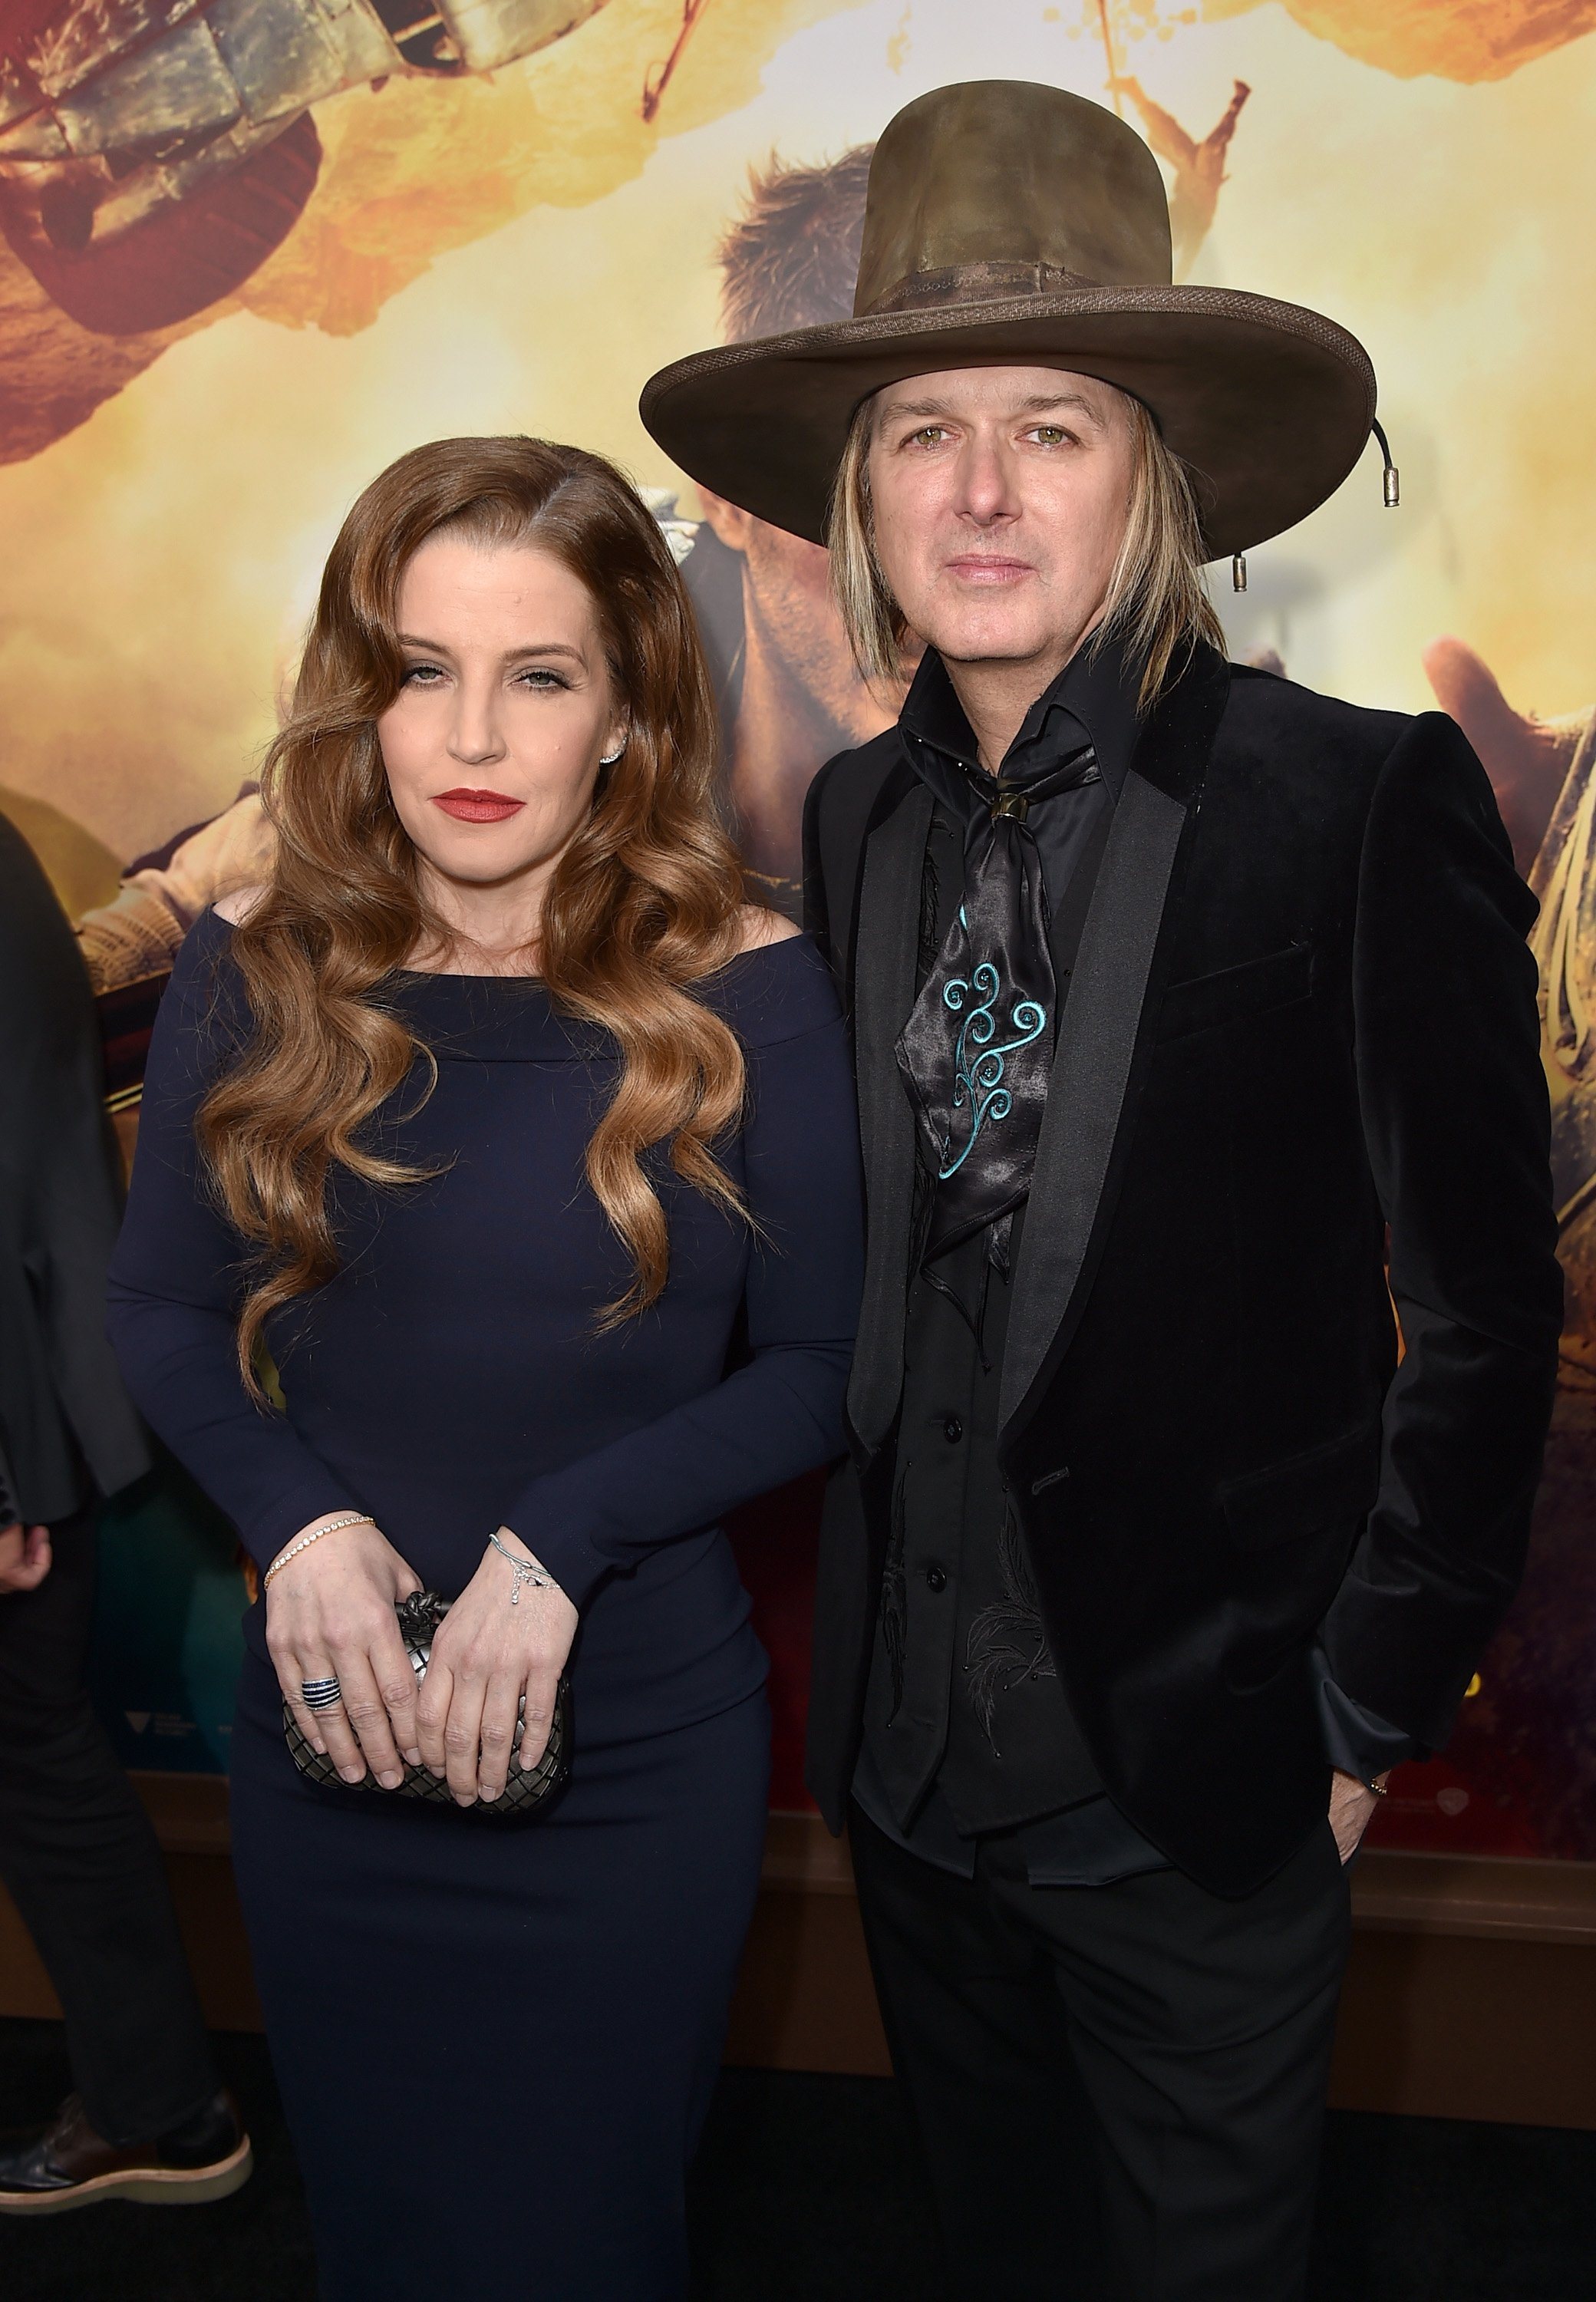 Lisa Marie Presley and Michael Lockwood on May 7, 2015 in Hollywood, California | Source: Getty Images